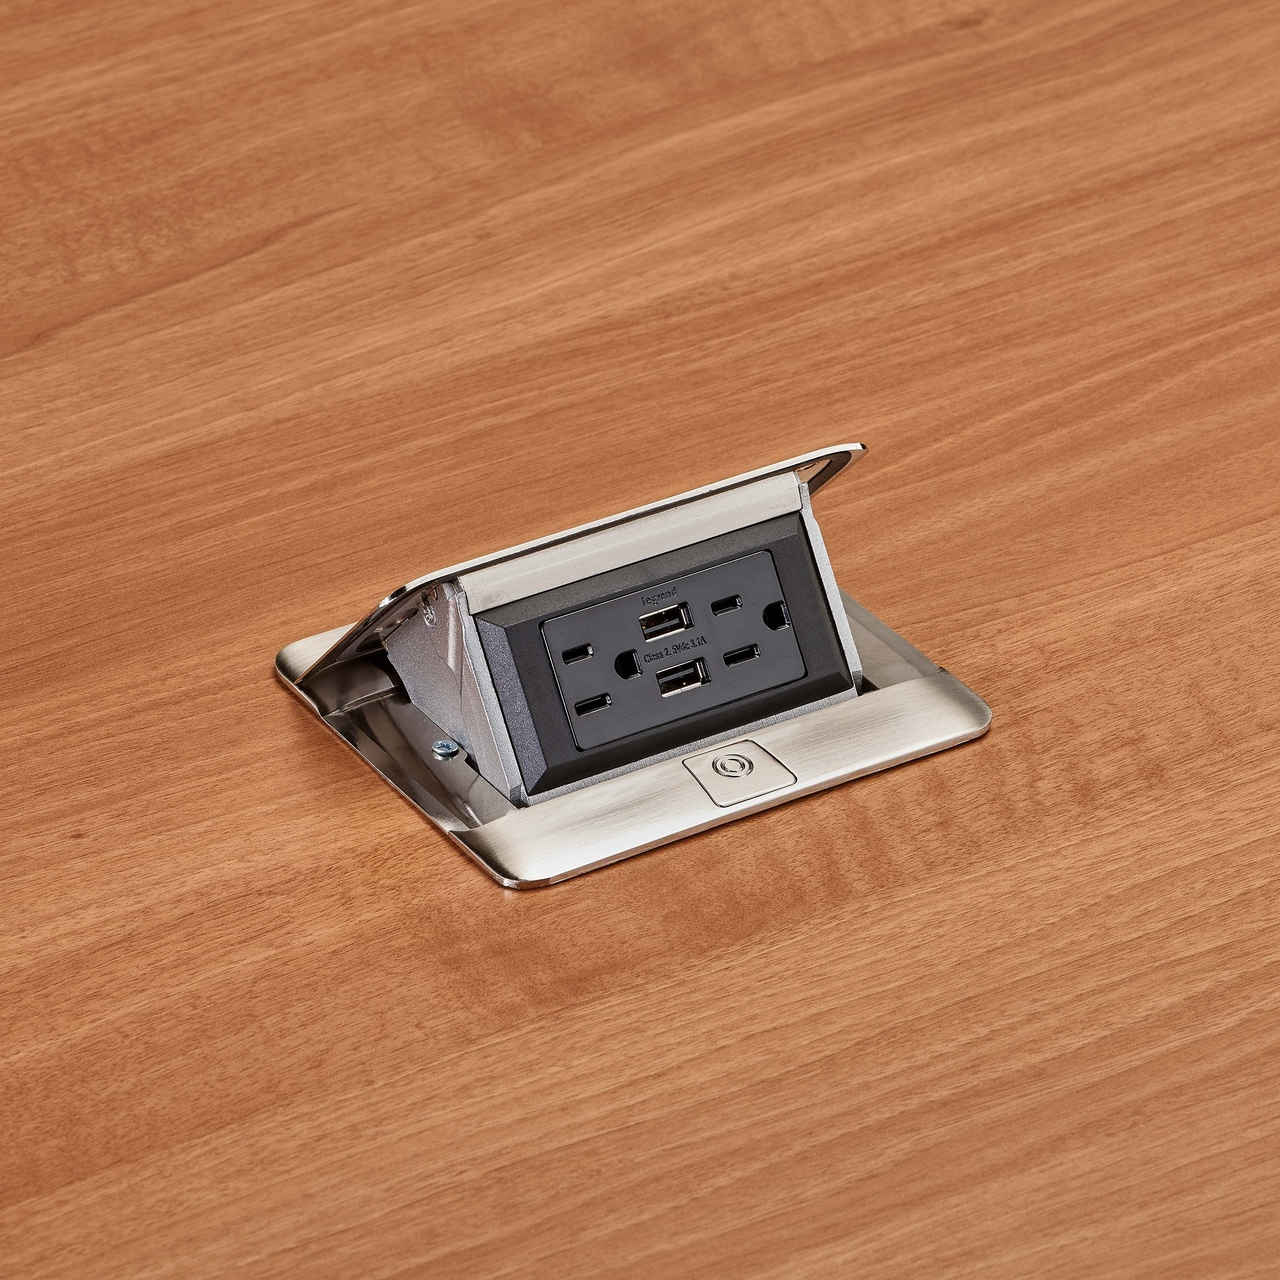 deQuorum Flip-Up Table Box 1-Gang 15A recep 3.1A USB, stainless steel finish-side view, DQFP15UST